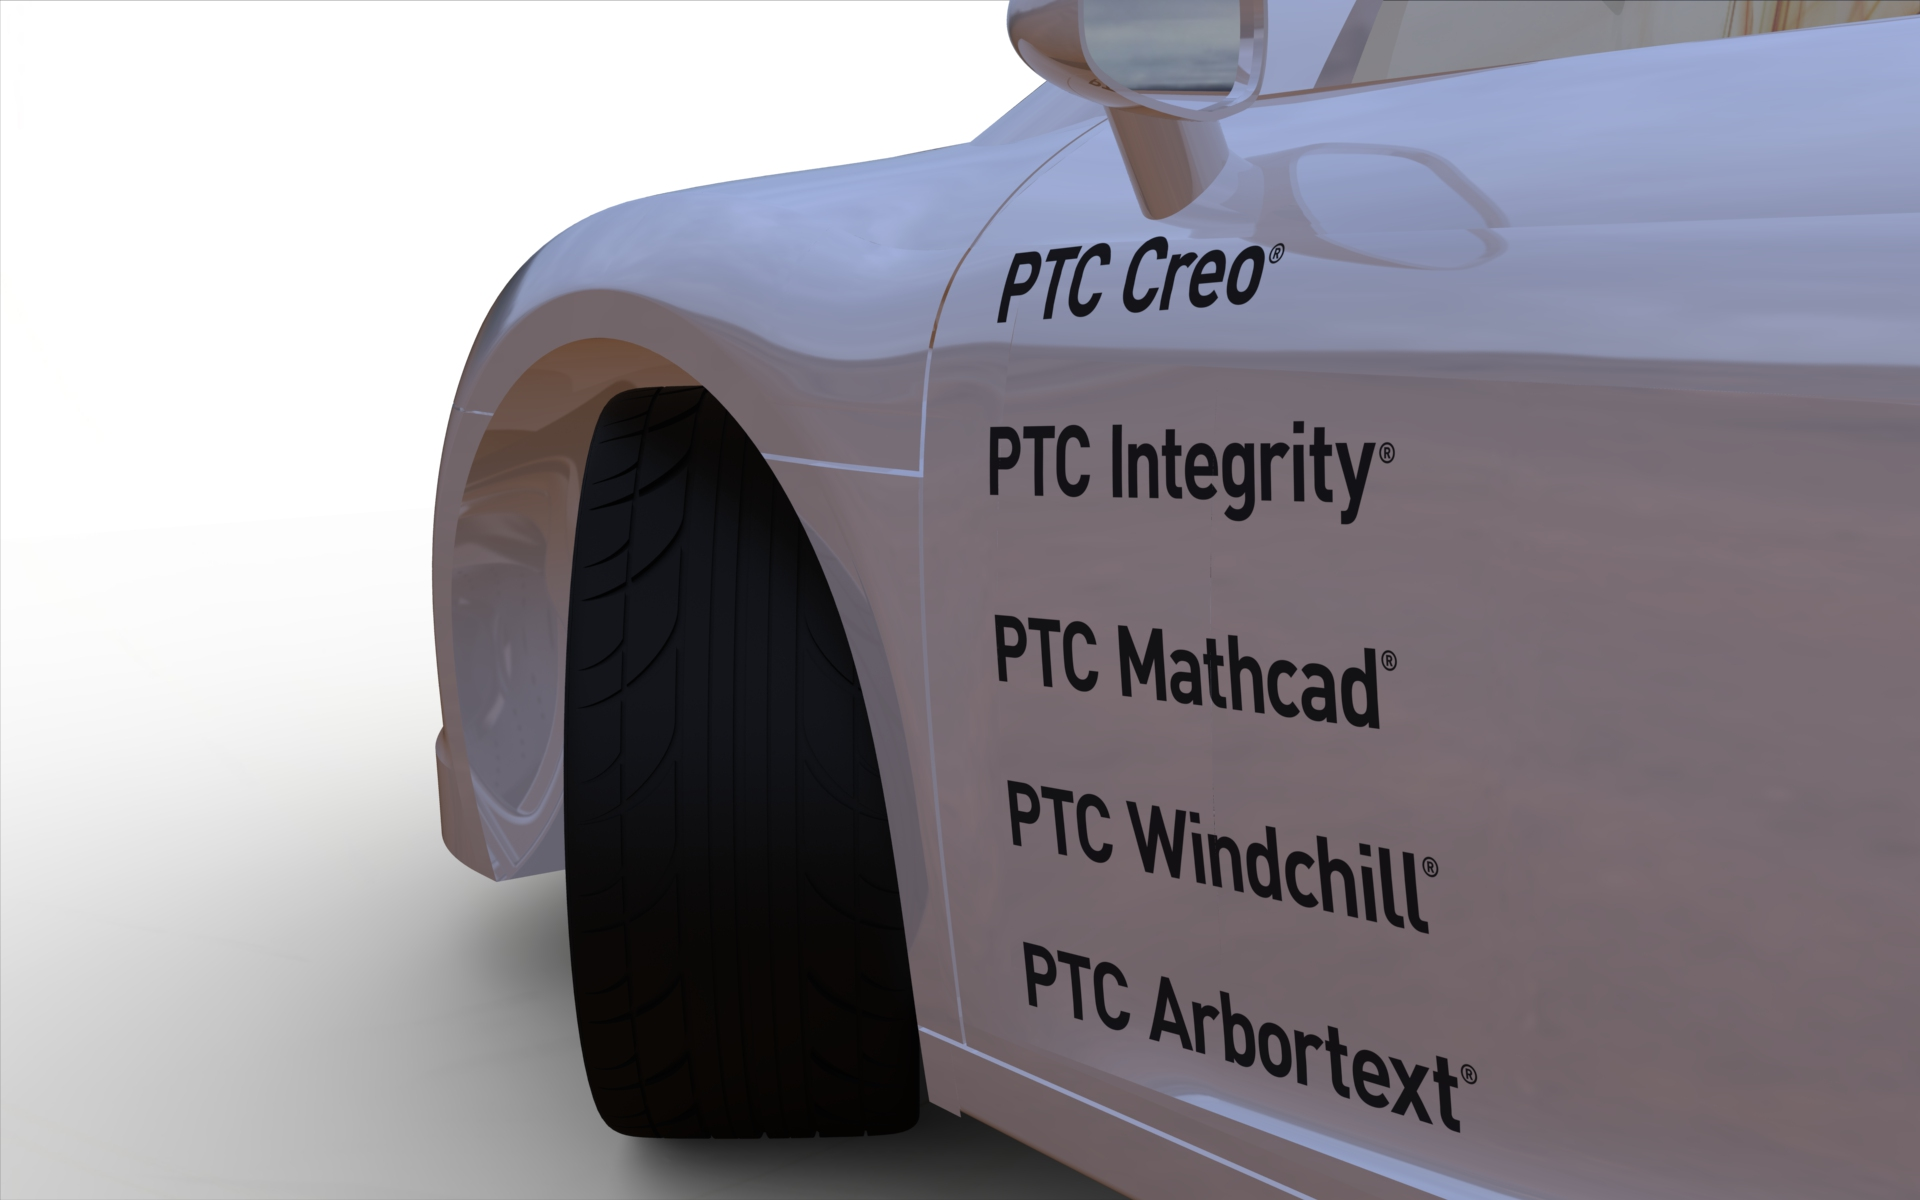 New PTC Product Names and Logos_a.jpg